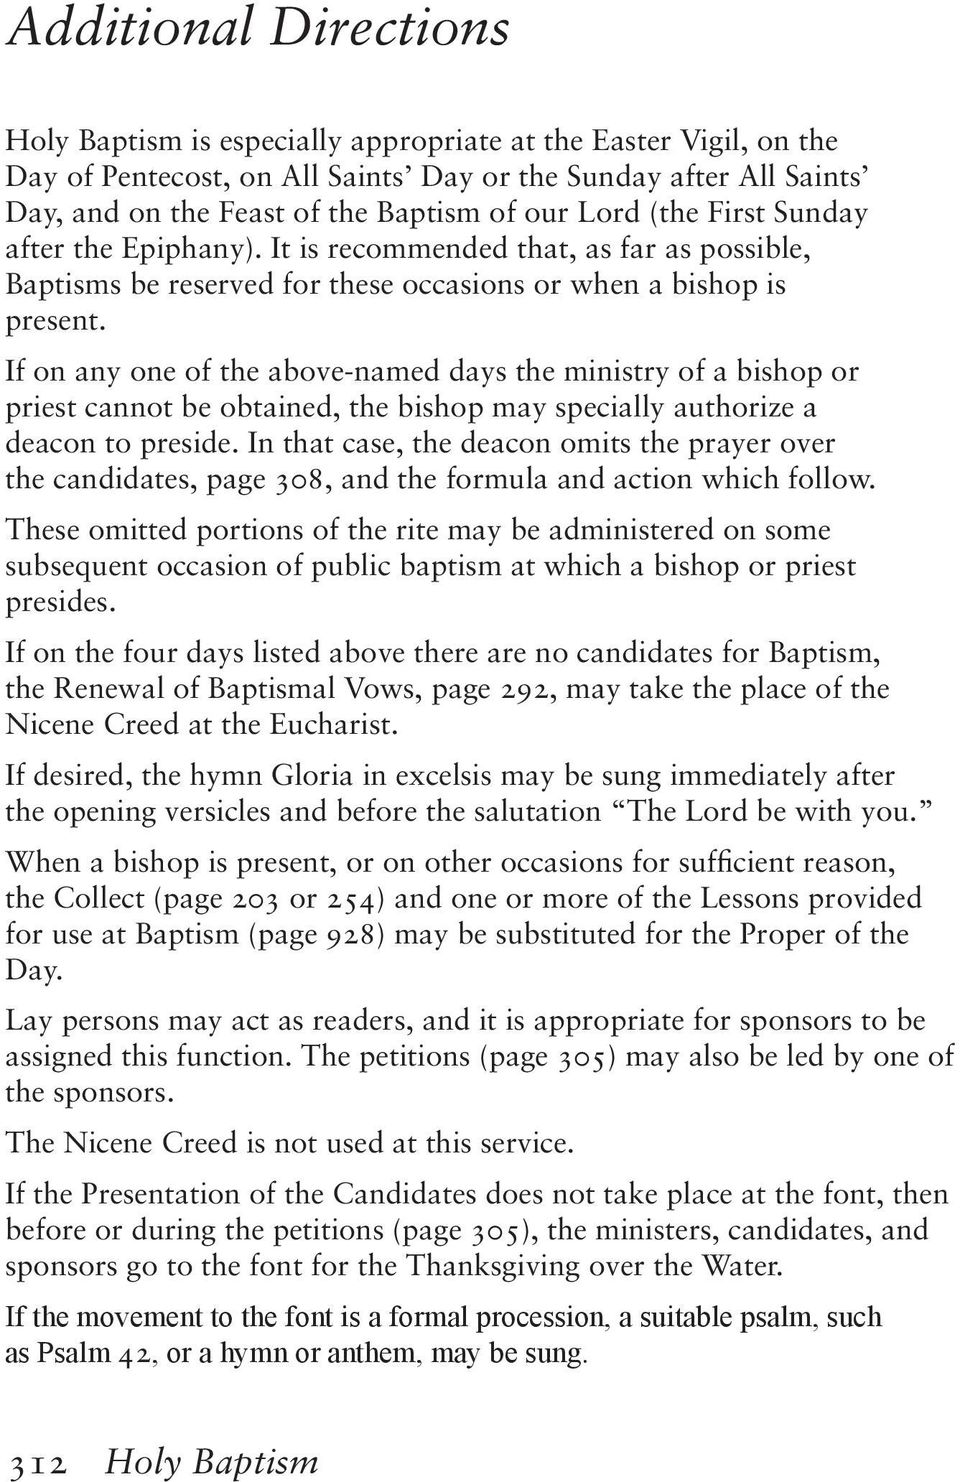 If on any one of the above-named days the ministry of a bishop or priest cannot be obtained, the bishop may specially authorize a deacon to preside.